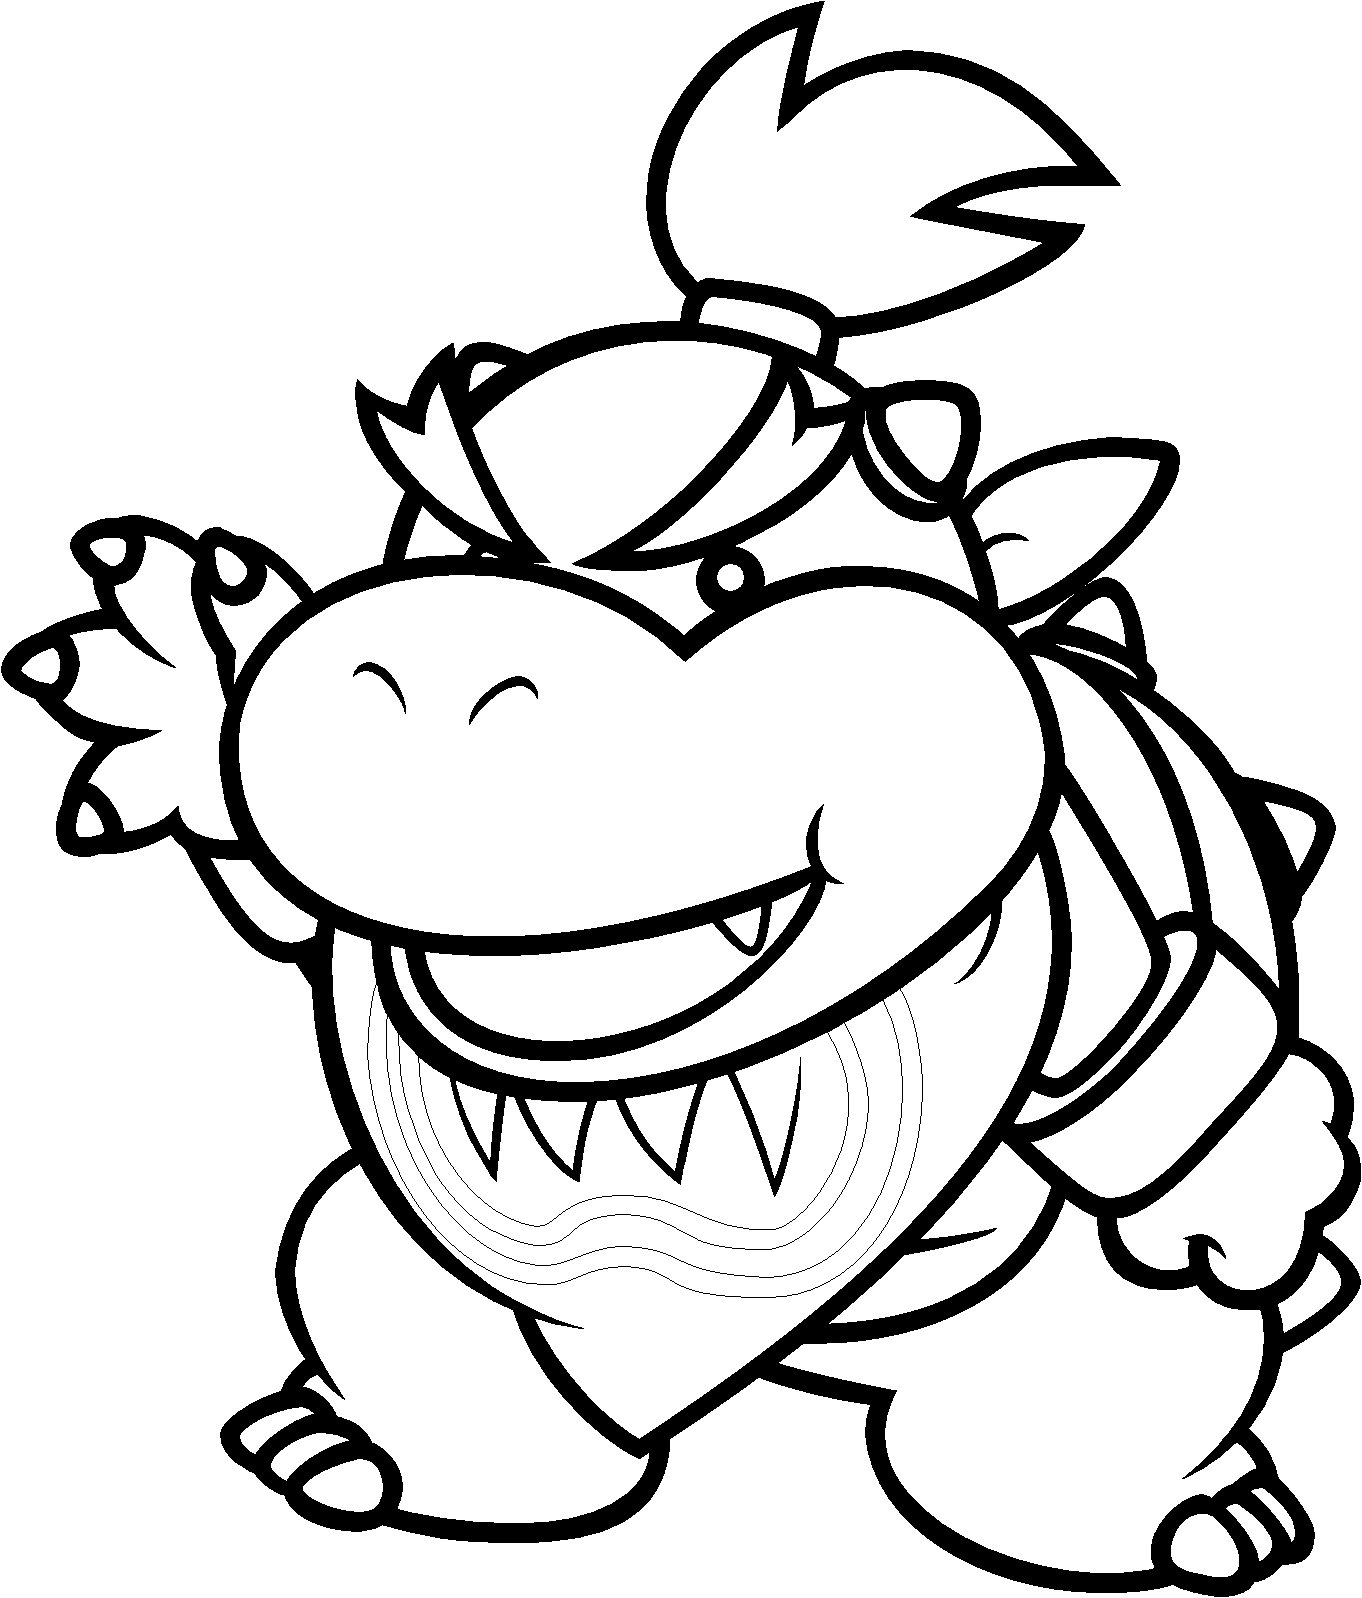 1362x1598 Paper Bowser Coloring Pages Download Coloring For Kids